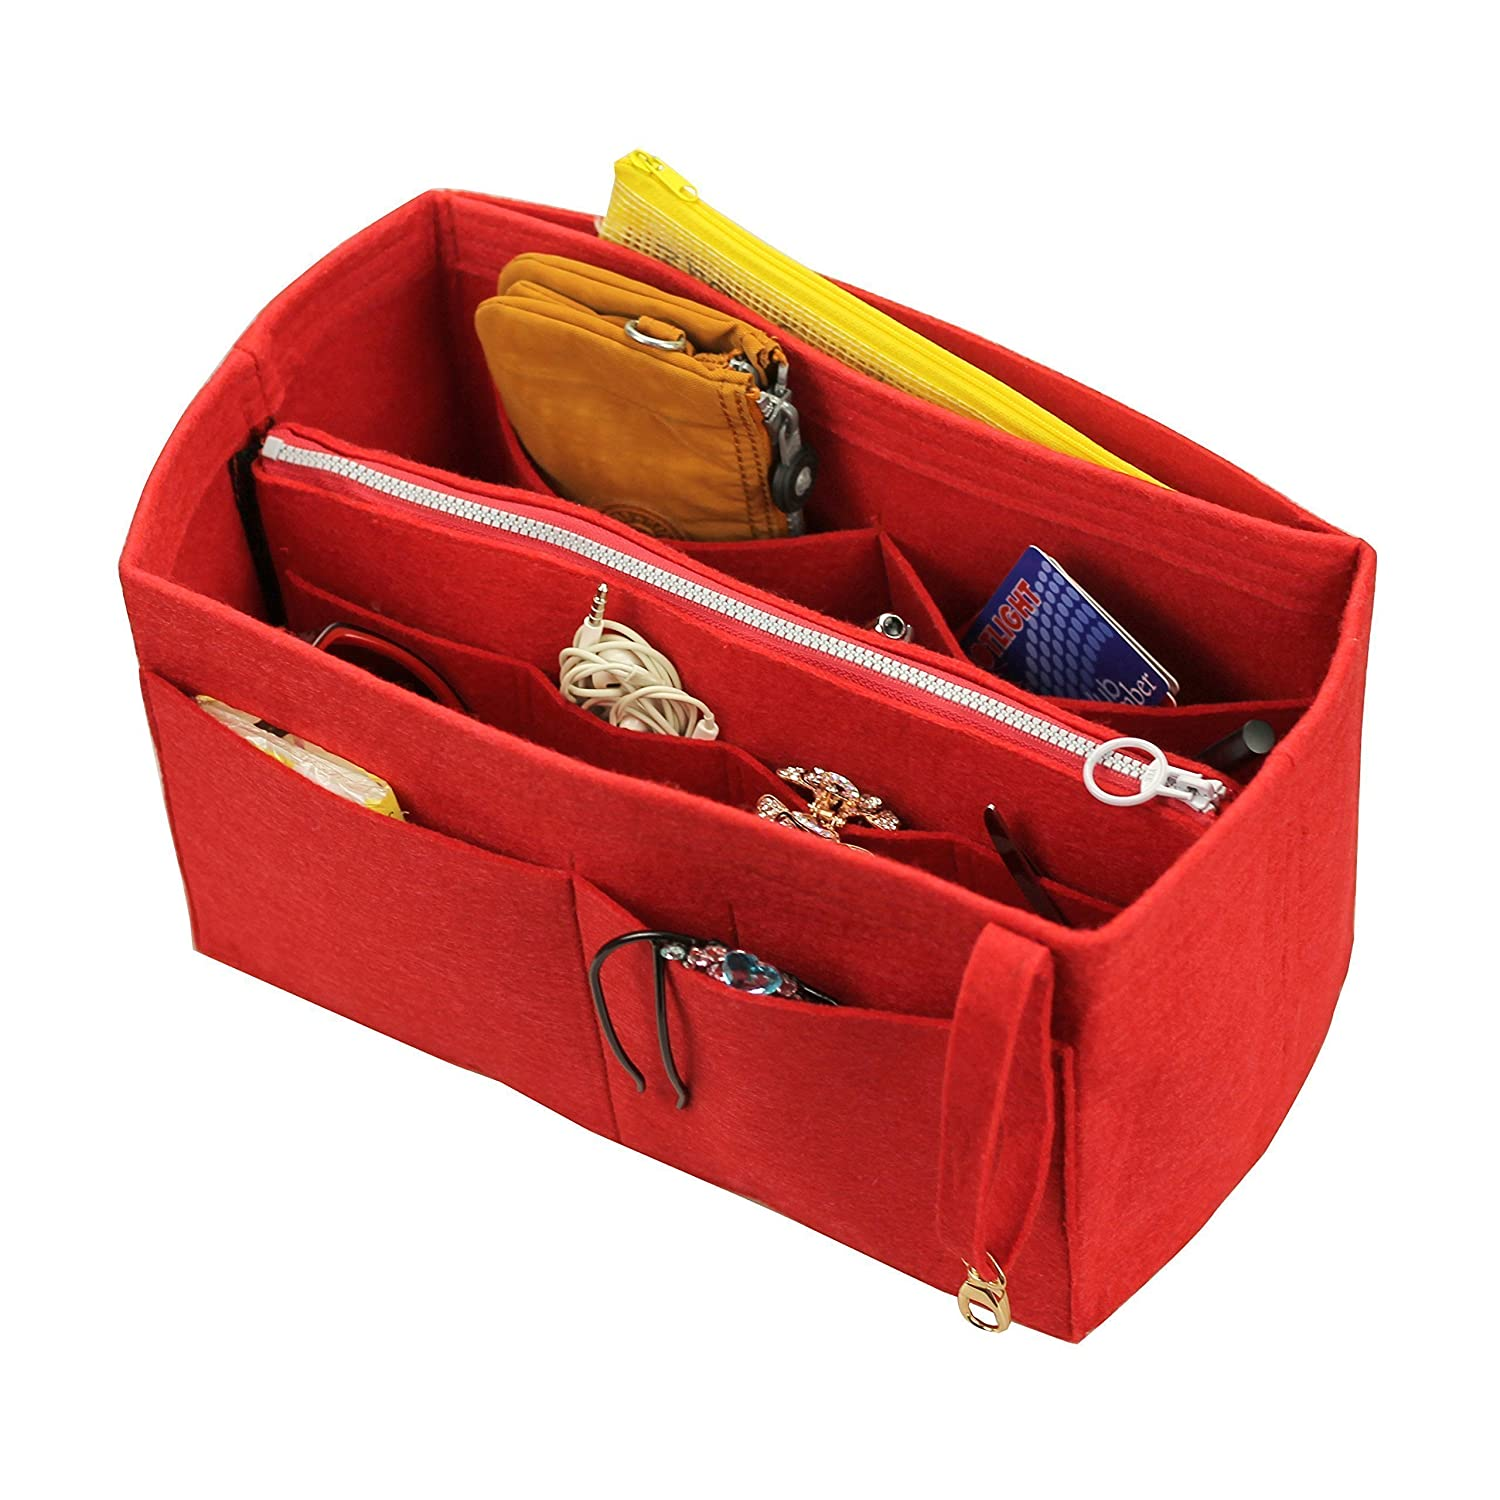 [Fits Speedy 35, Red] Felt Organizer (with Detachable Middle Zipper Bag), Bag in Bag, Wool Purse Insert, Customized Tote Organize, Cosmetic Makeup Diaper Handbag